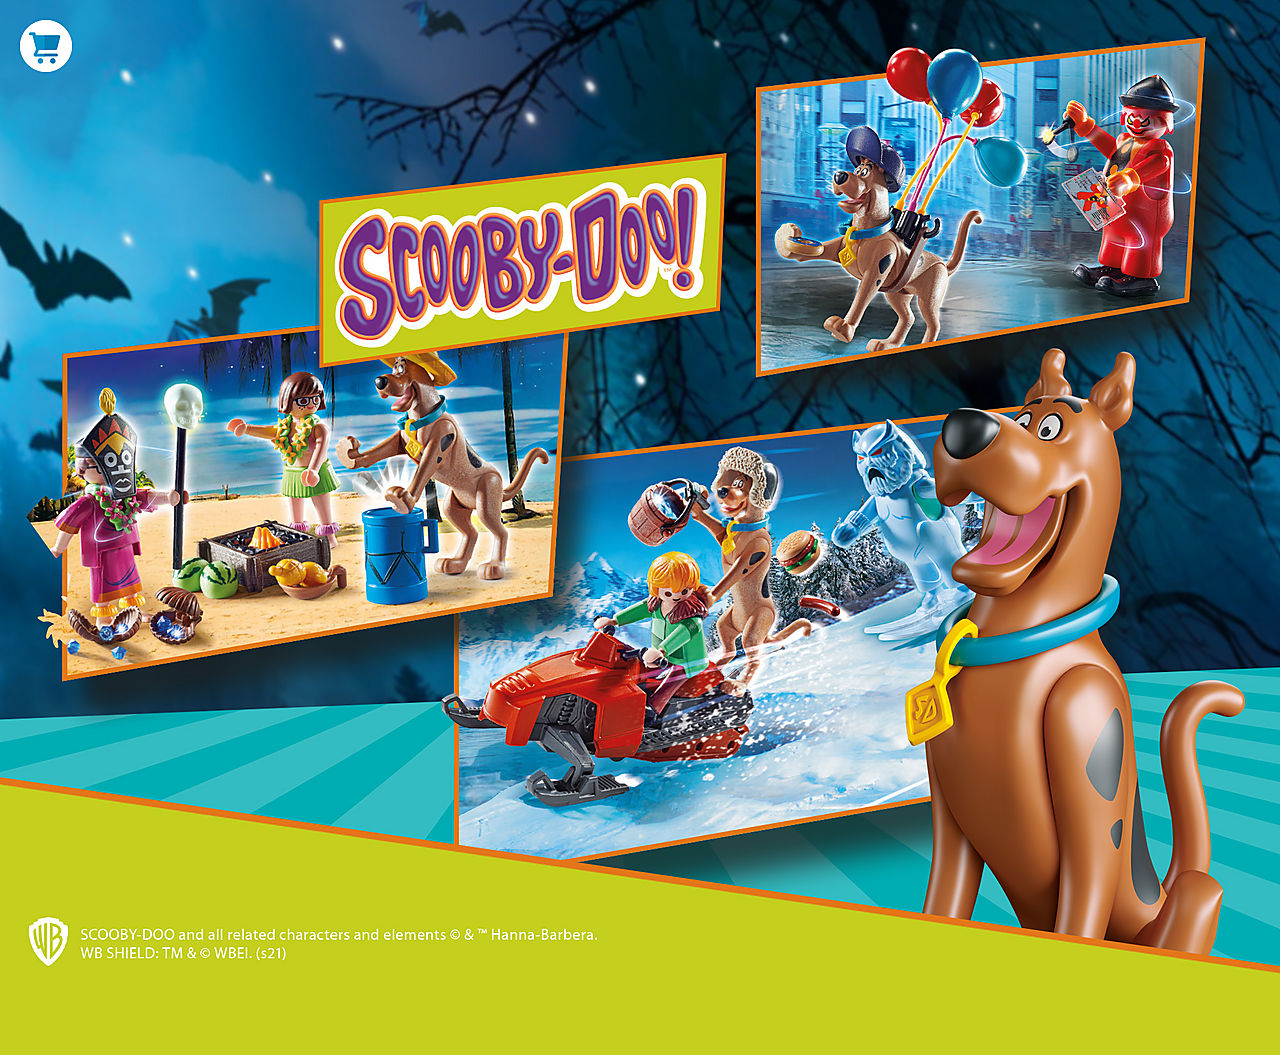 Discover the new SCOOBY-DOO playsets and collectible figures like 70710 SCOOBY-DOO! Adventure with Ghost Clown or 70706 SCOOBY-DOO! Adventure with Snow Ghost